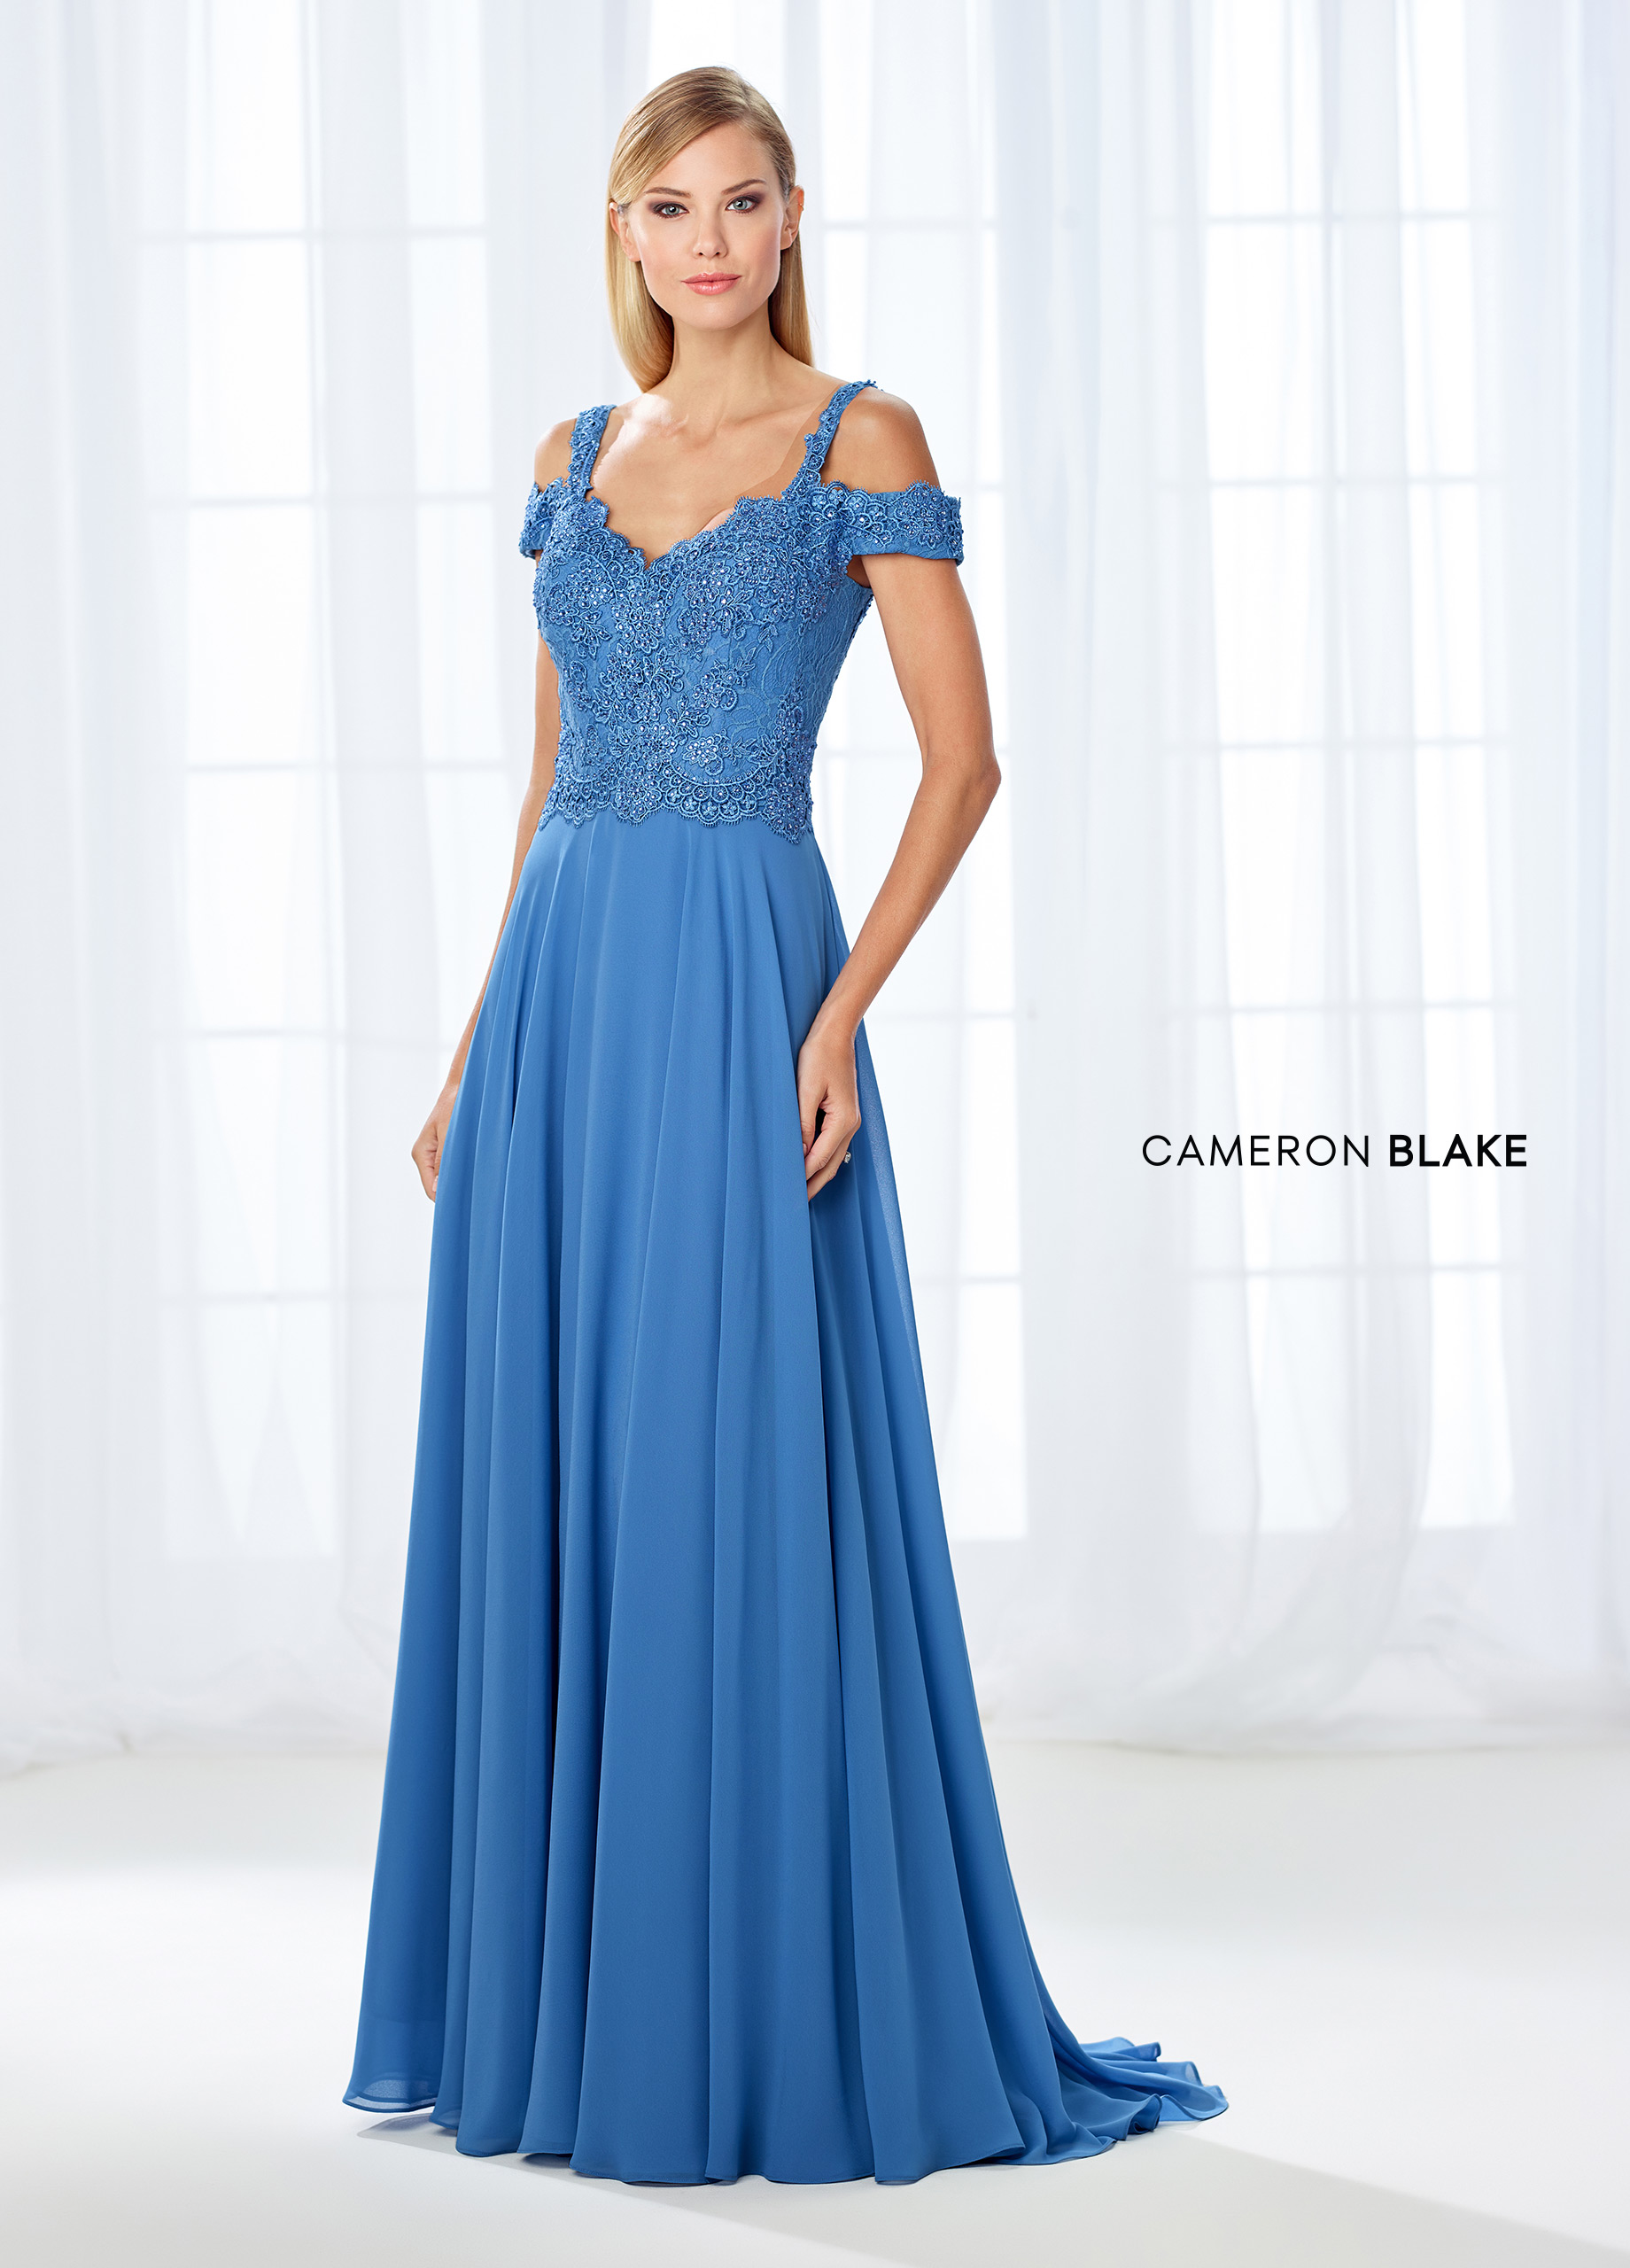 fcd84bb31f19 Simultaneously trendy and classic, this cold shoulder chiffon A-line gown  features a scalloped lace sweetheart bodice adorned with sparkling heat set  stones ...